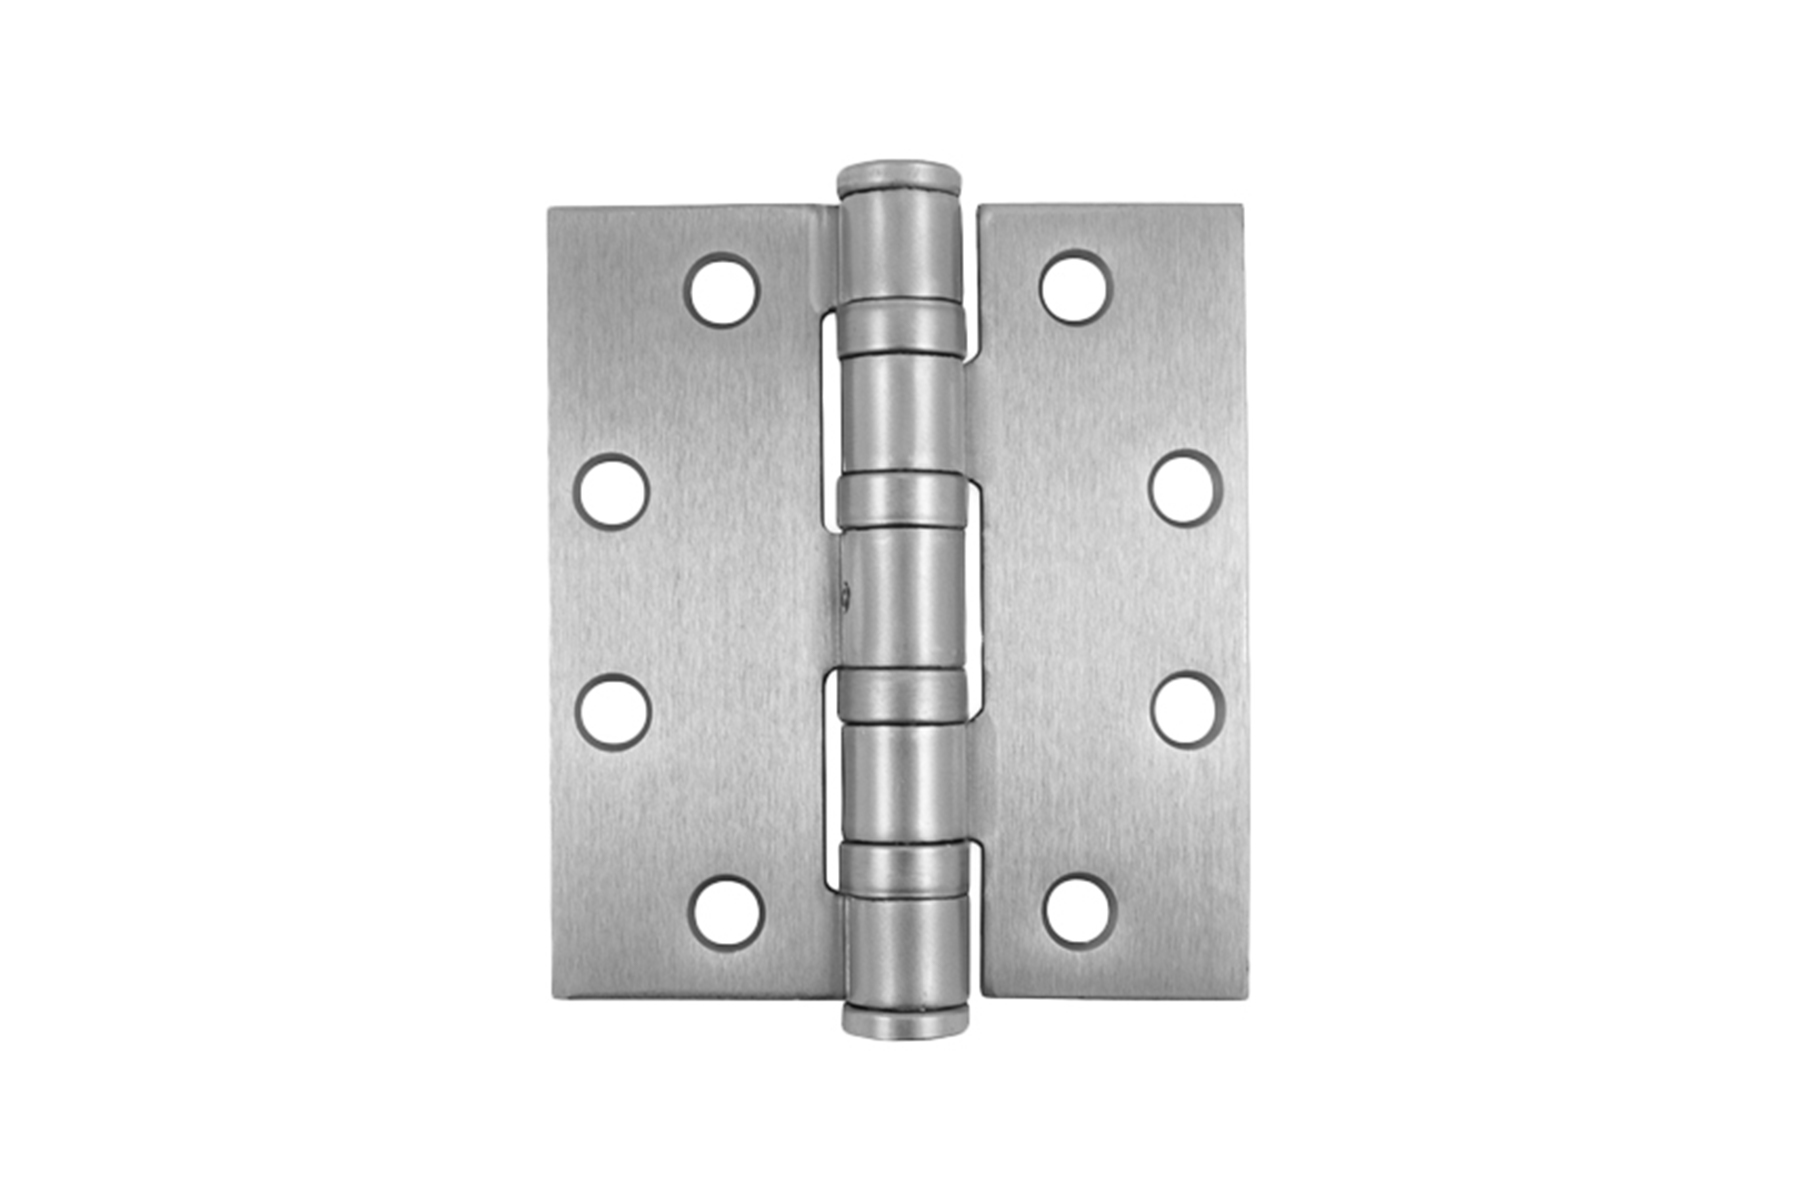 Dorex 1168 Heavy-Duty Ball Bearing Hinges